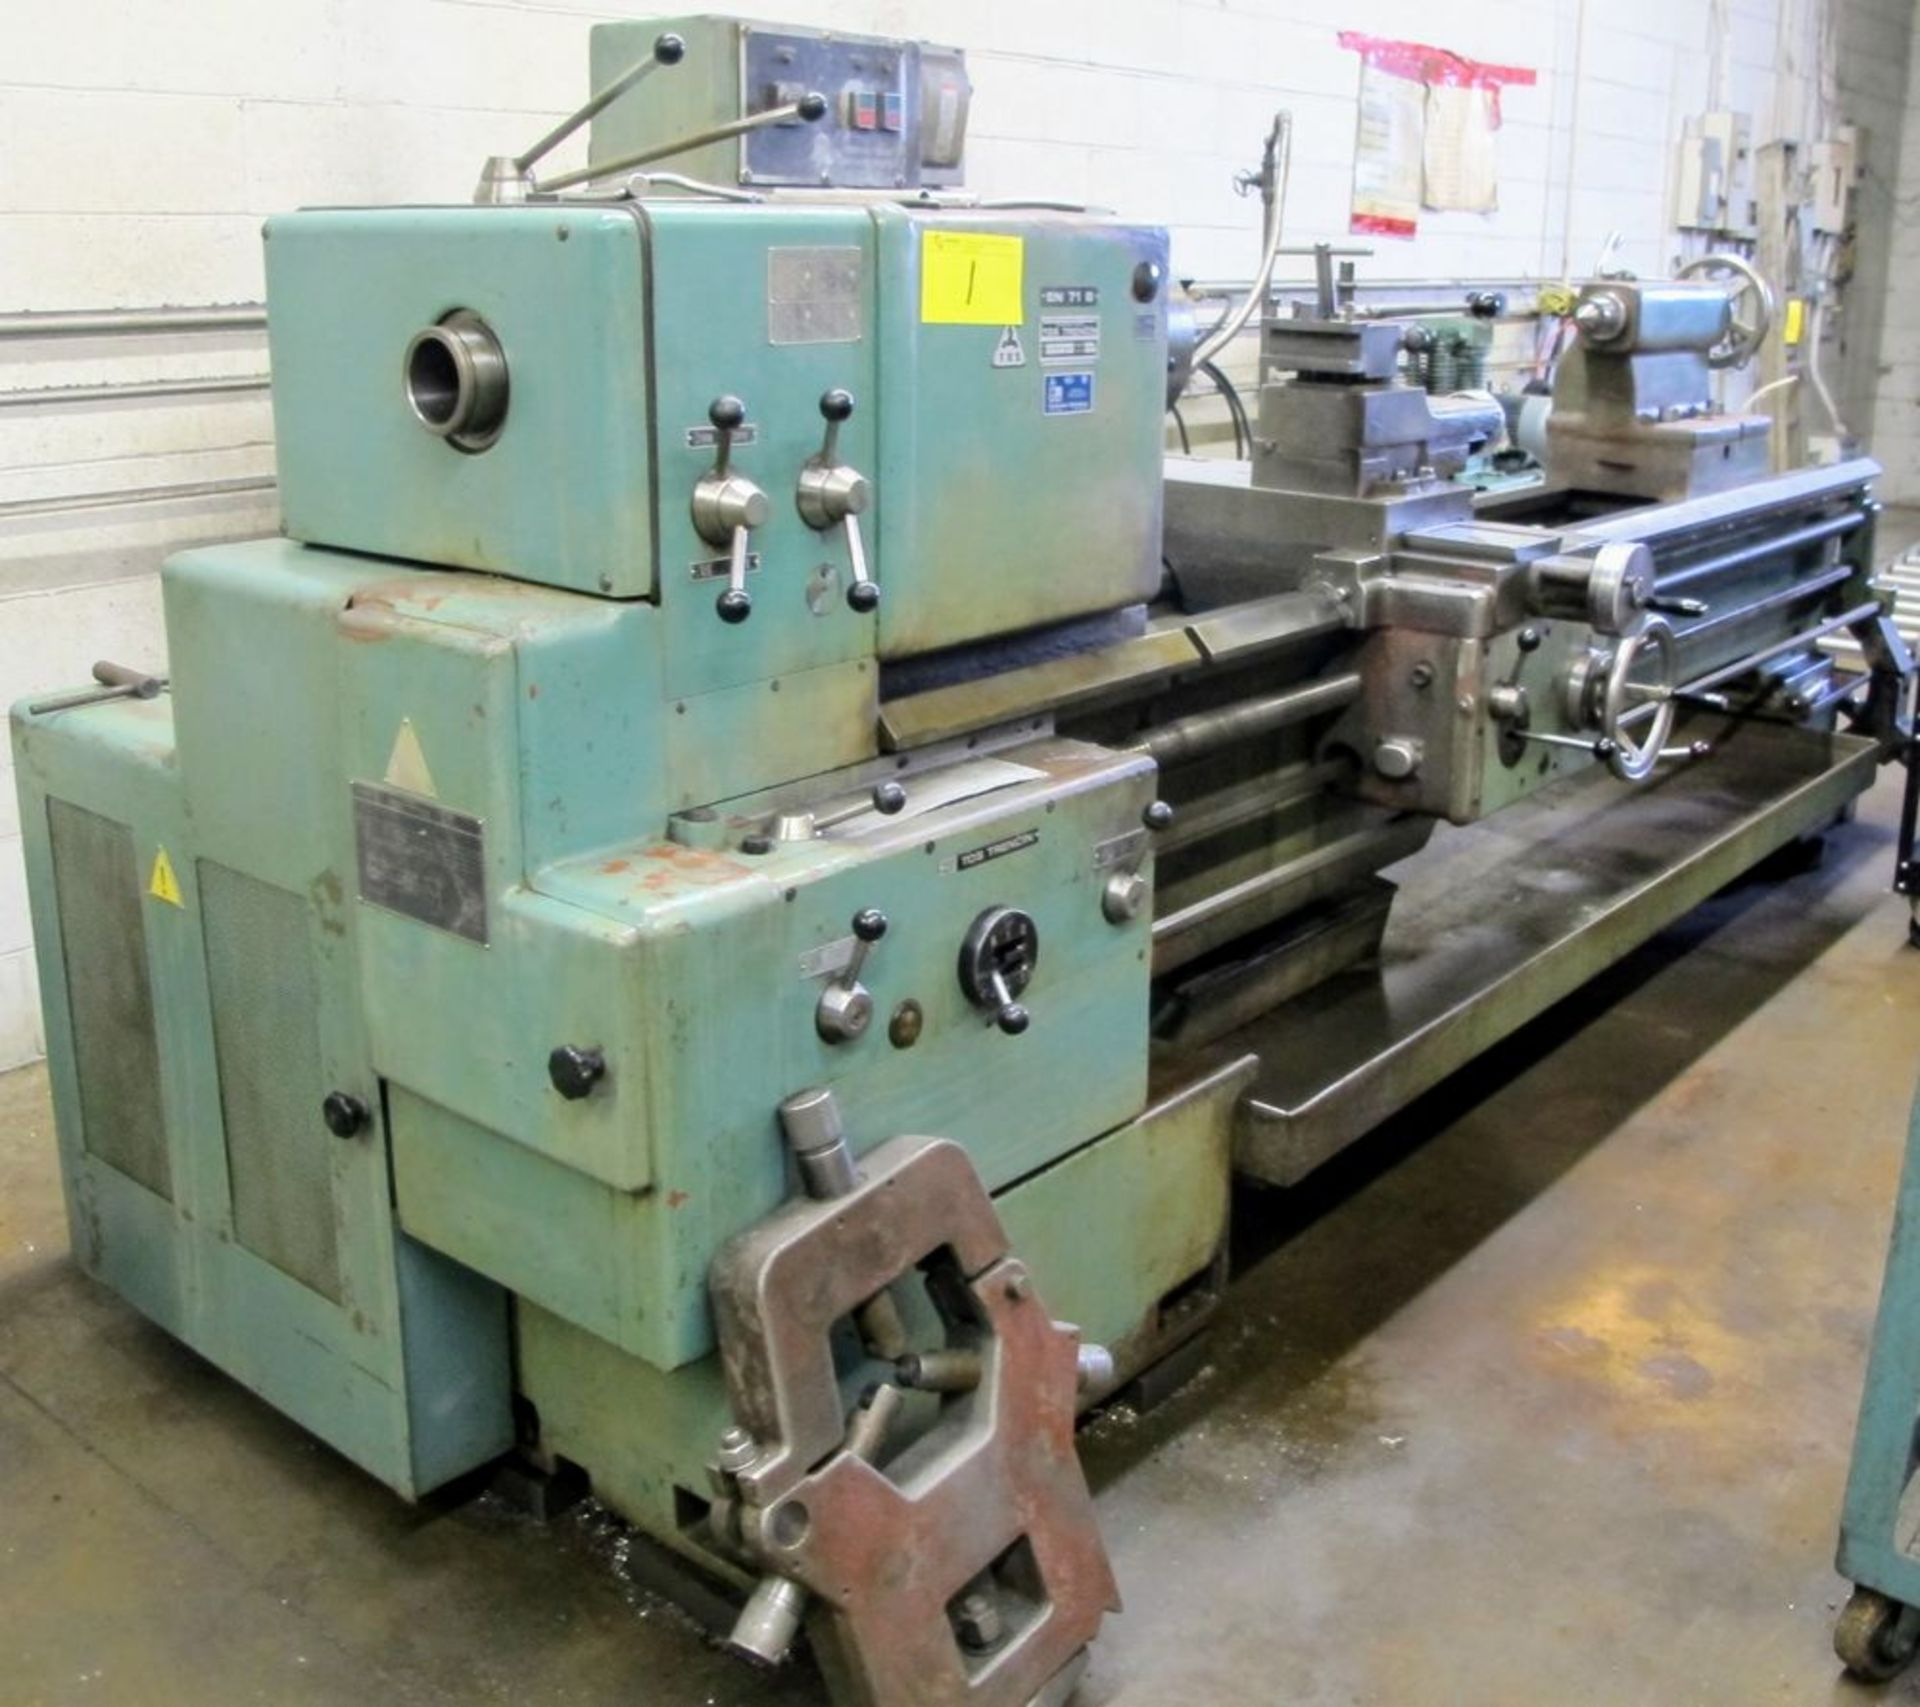 """TOS TRENCIN SN71B LATHE, 28"""" SWING, 7' BED, 3 JAW CHUCK, TAIL STOCK, STEADY REST, QUICK CHANGE - Image 2 of 10"""